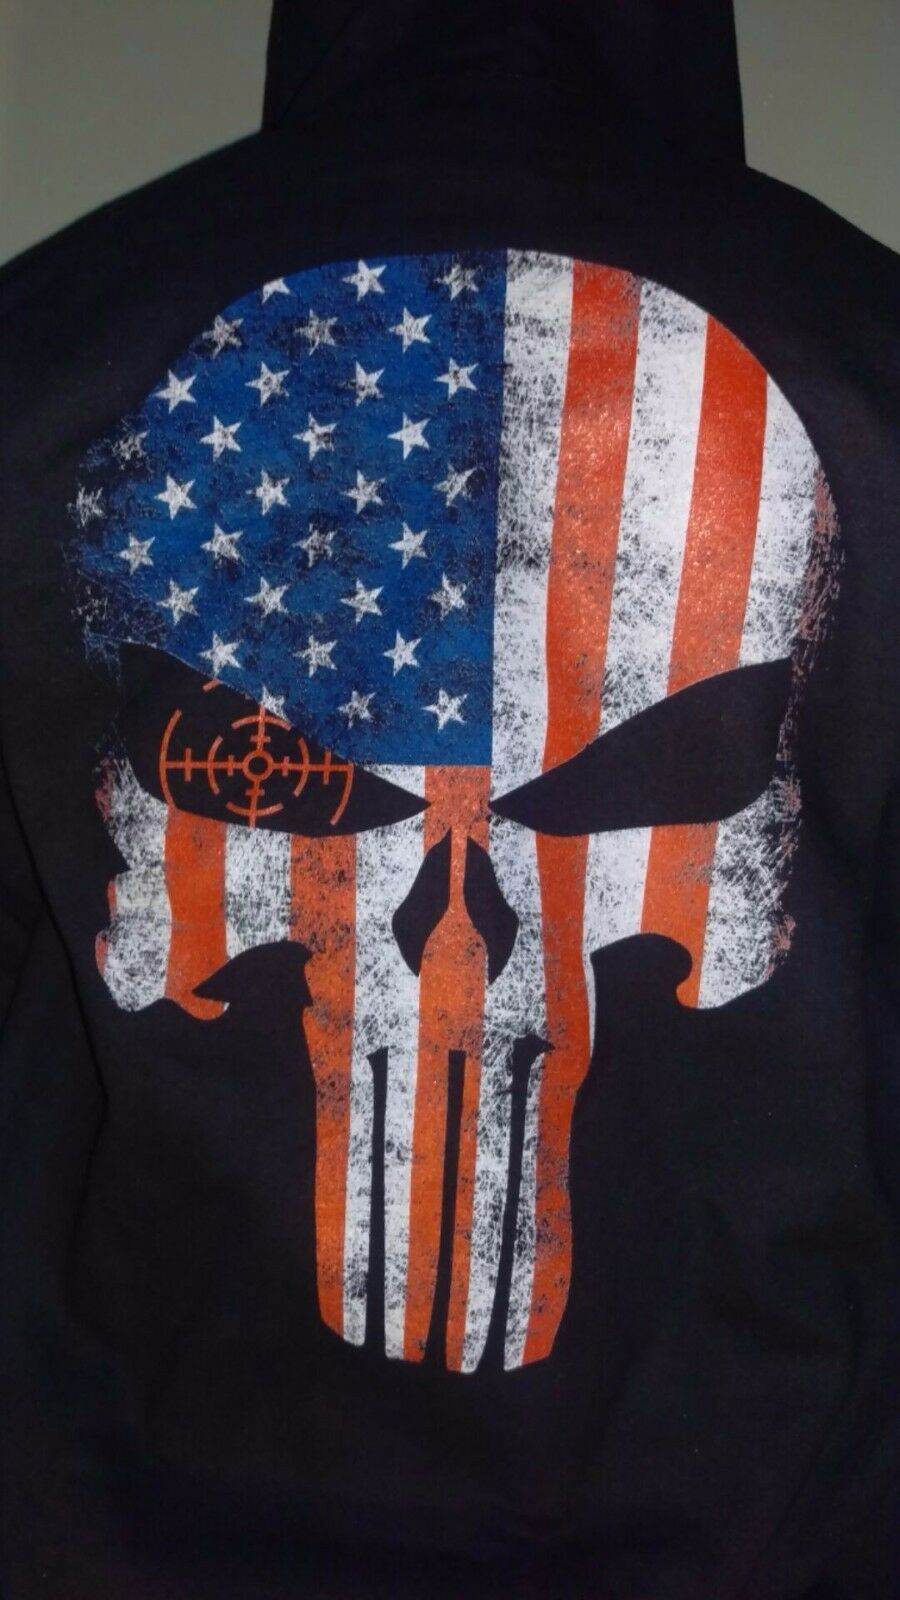 Punisher USA Flag Zip Down Hoodie July 4th skull tactical new military skull